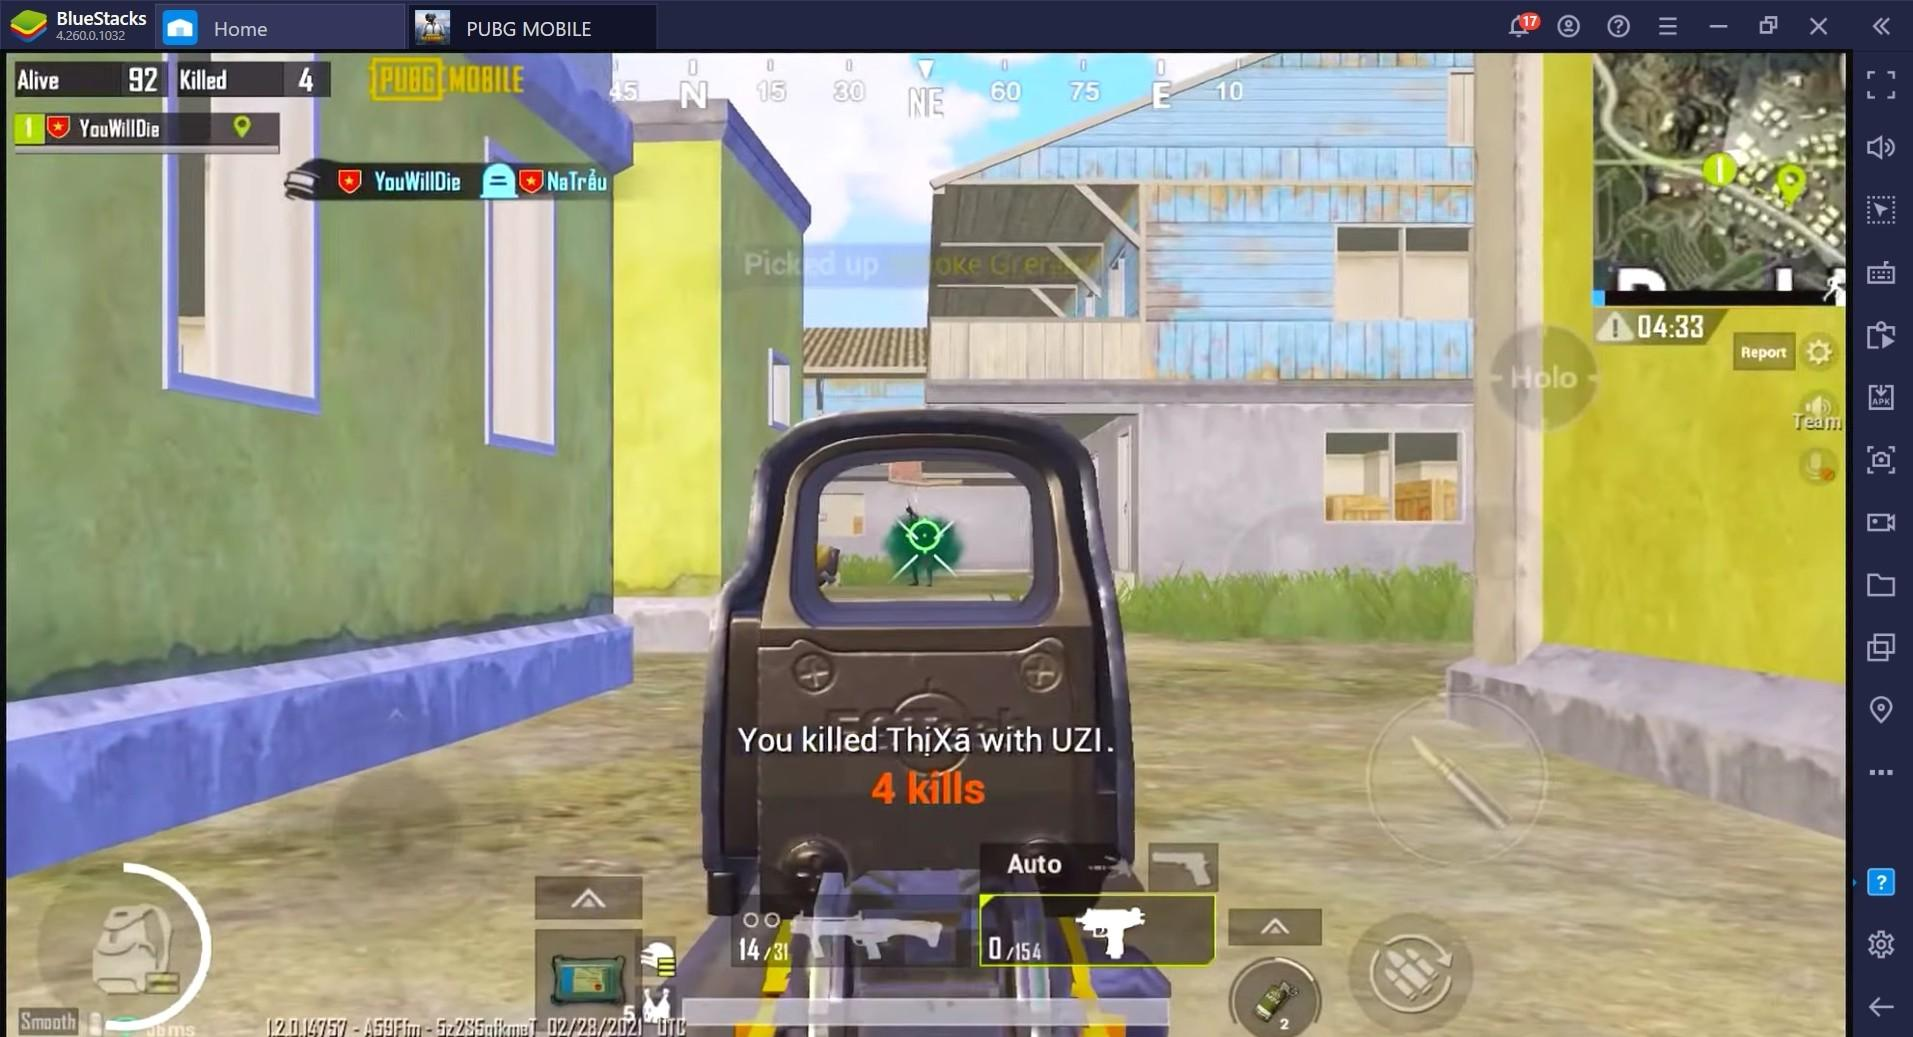 PUBG Mobile FAMAS Weapon Guide: Its Recoil Needs to Be Managed